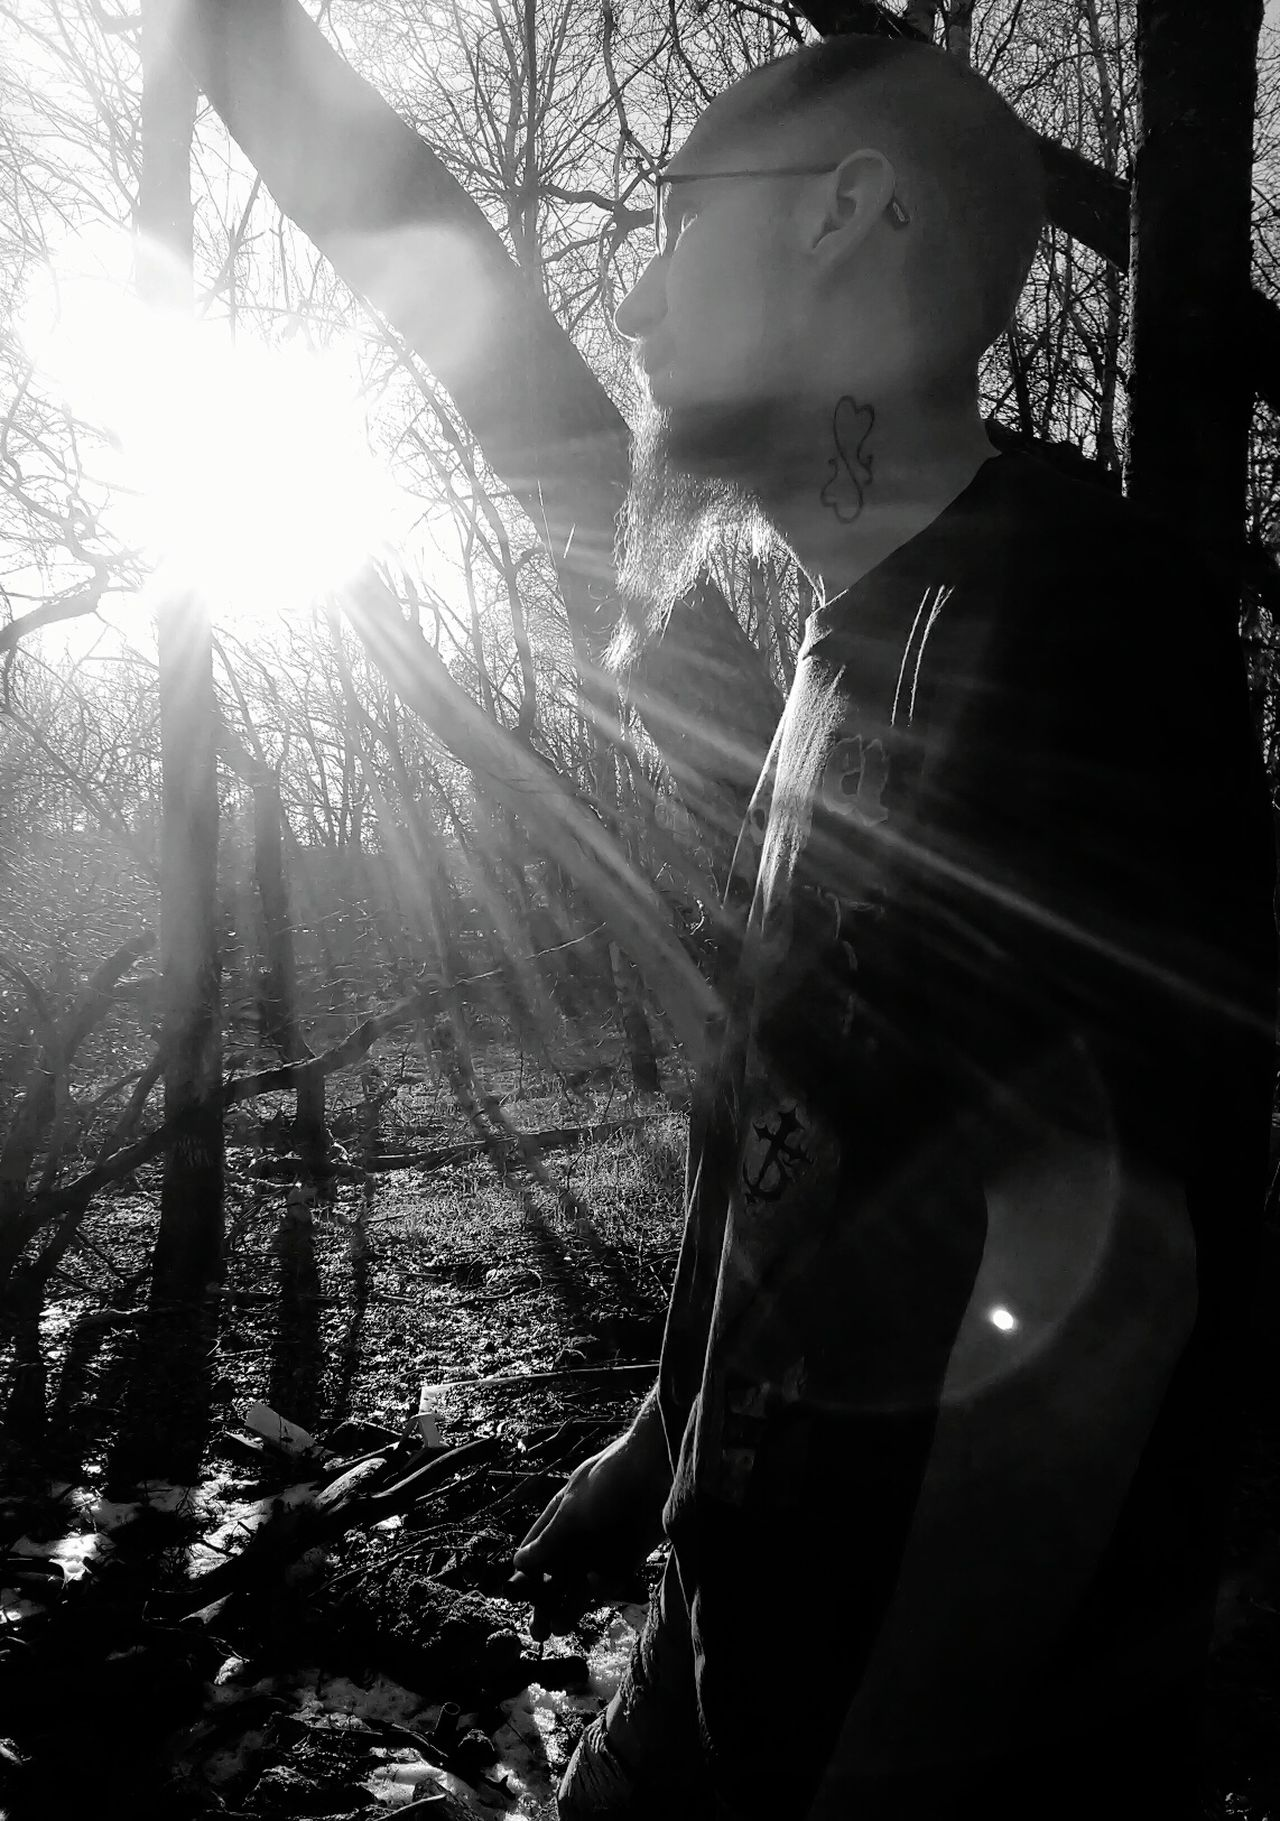 One Man Only Sun Burst Sunbeam My Point Of View Michigan Up North Nature Photography Michigan Outdoors My Husband ❤ 2017 My Photography. ❤ Real People, Real Lives Thinking Of How Things Used To Be Middle Of Nowhere Beauty In Nature Sunlight Black And White Collection  Nature_collection Low Angle View Tree Outdoors Wilderness Area Lens Flare Check This Out! Rock - Object Branch